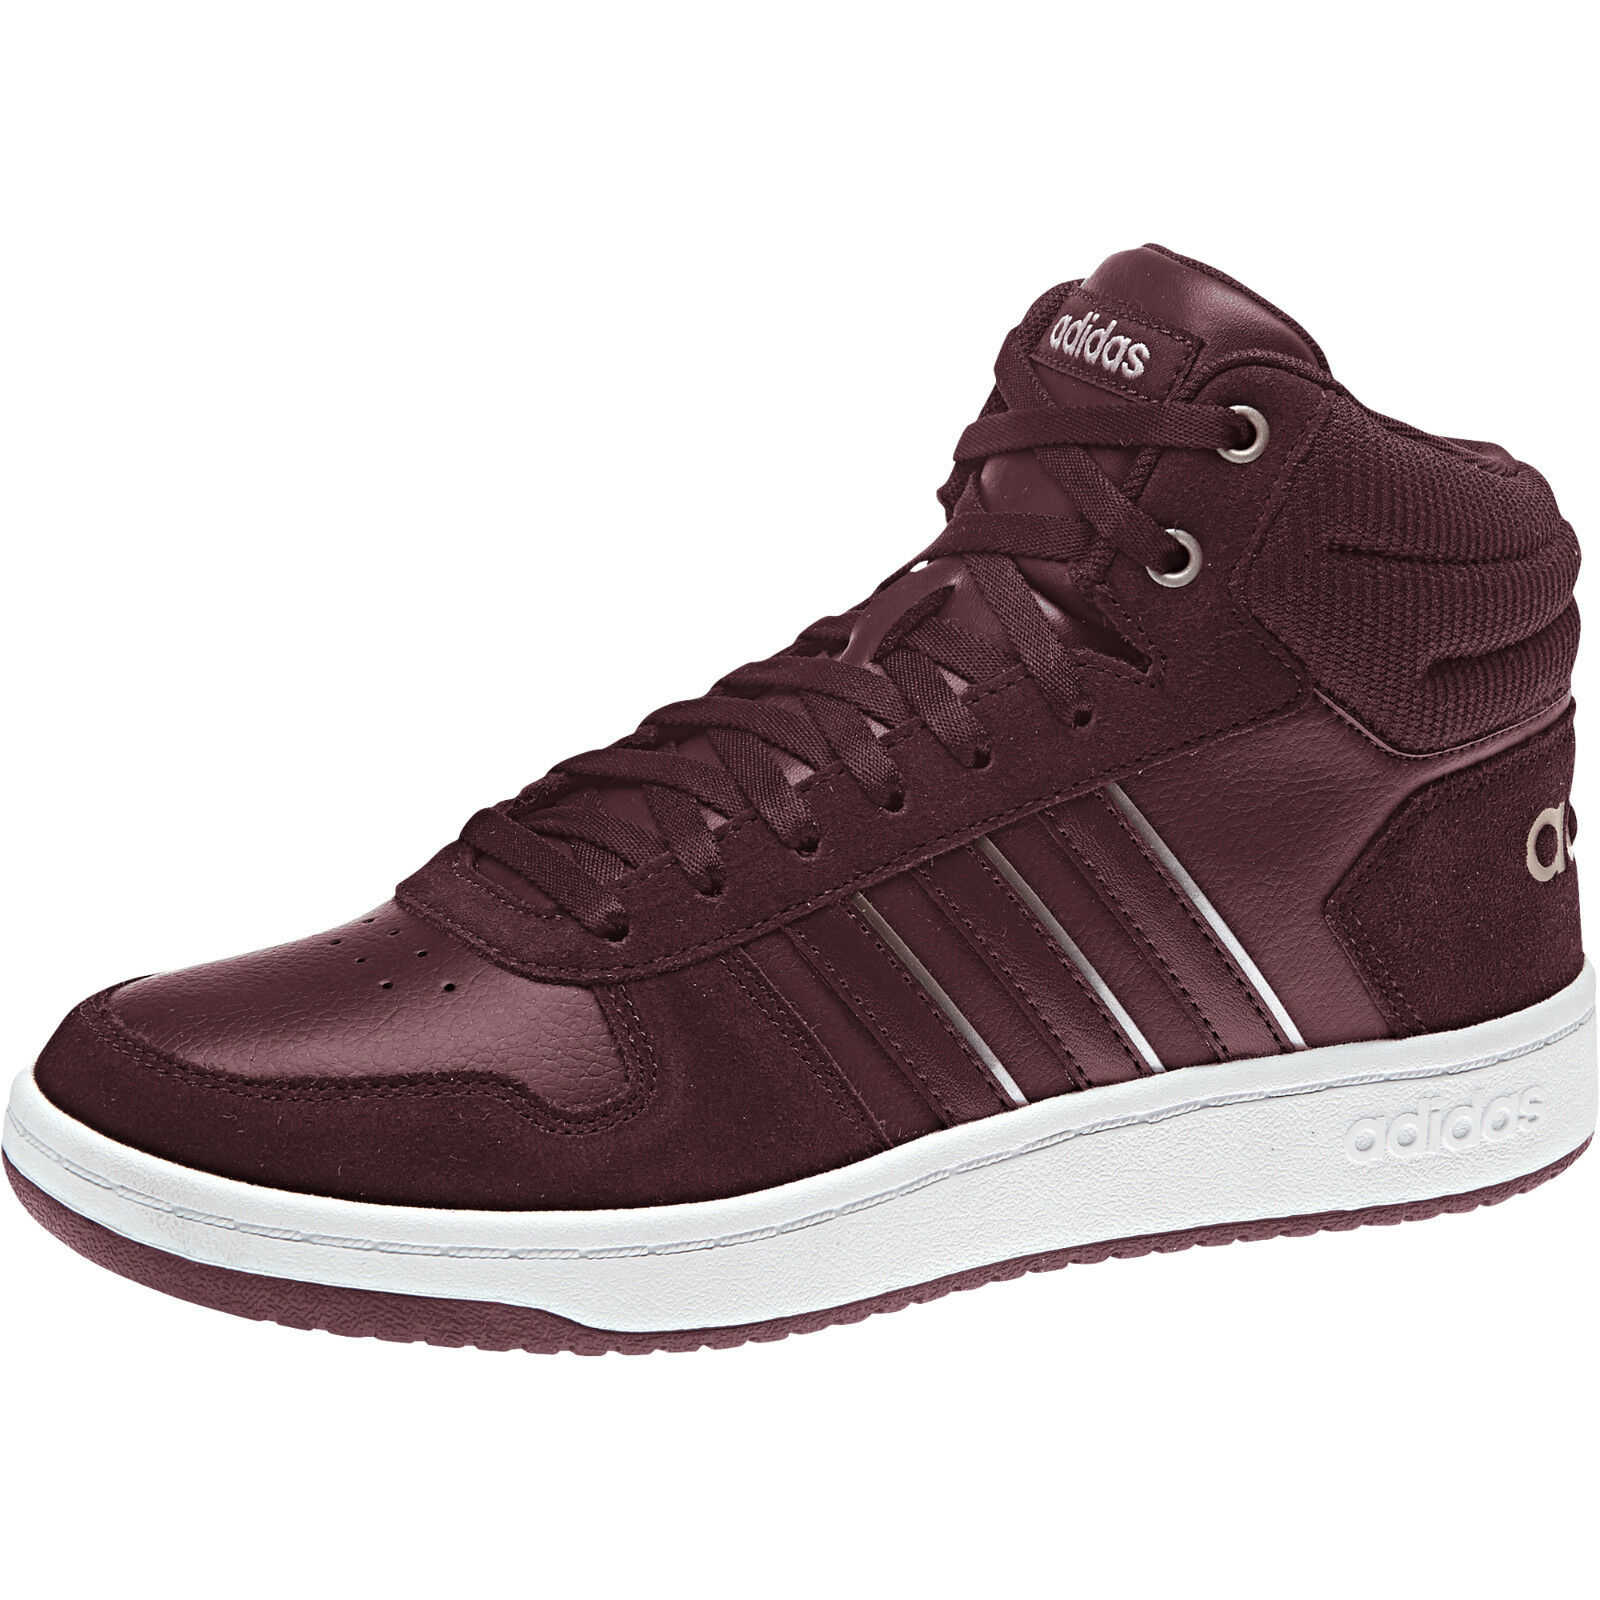 Adidas damen schuhe Casual Turnschuhe Fashion Hoops Mid Trainers Running New B42108